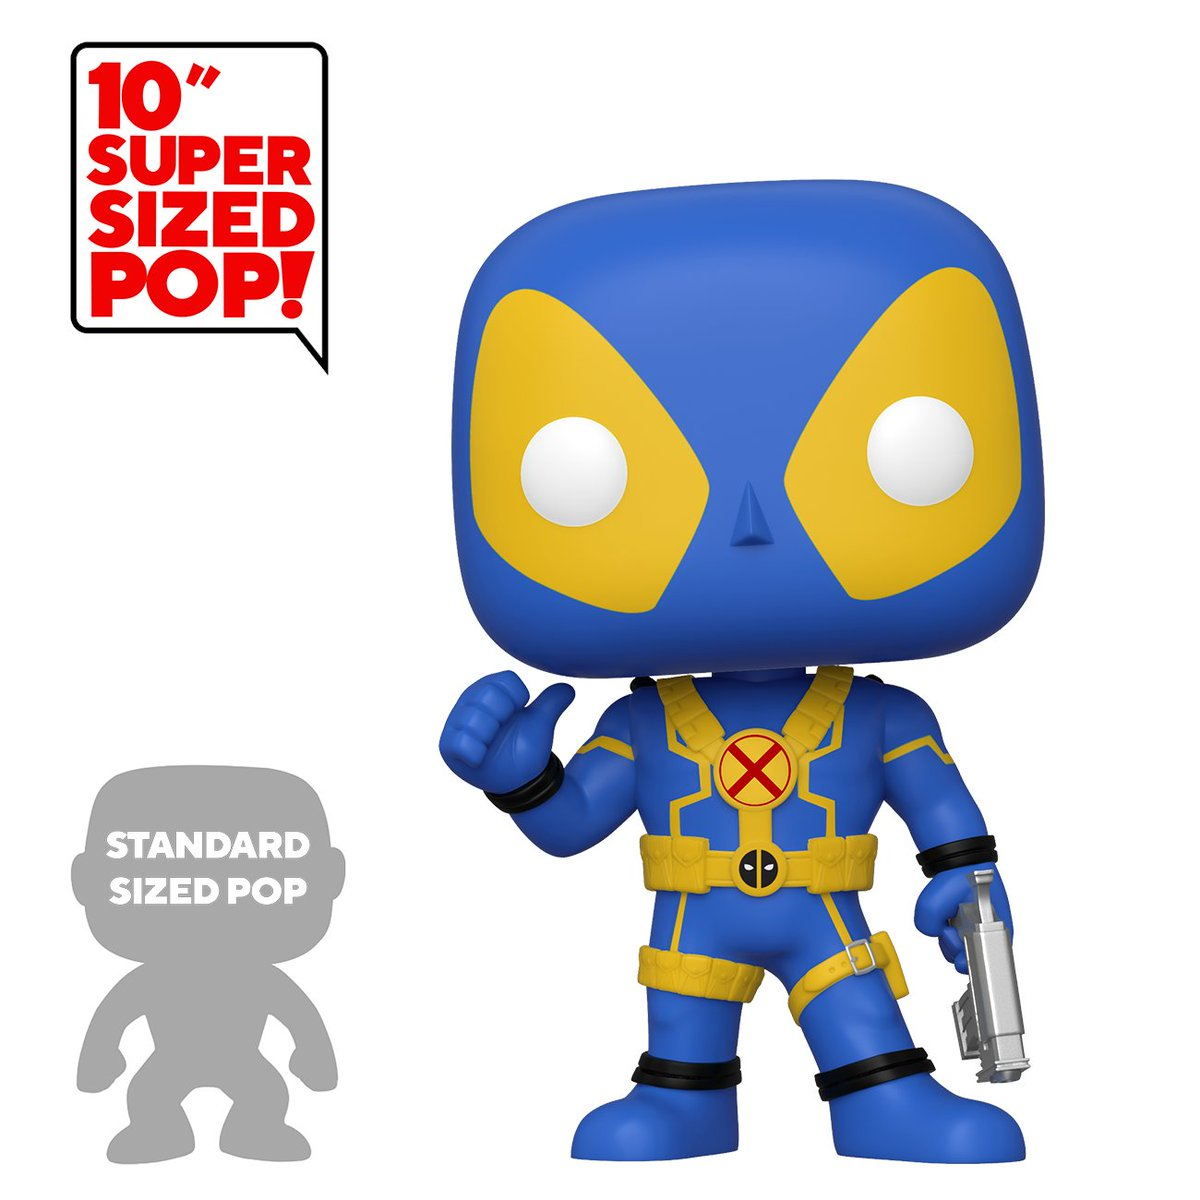 "RT & follow @OriginalFunko for a chance to WIN a @Walmart Exclusive 10"" Blue Deadpool Pop! #Funko #FunkoPop #giveaway #Exclusive #Deadpool #Marvel"